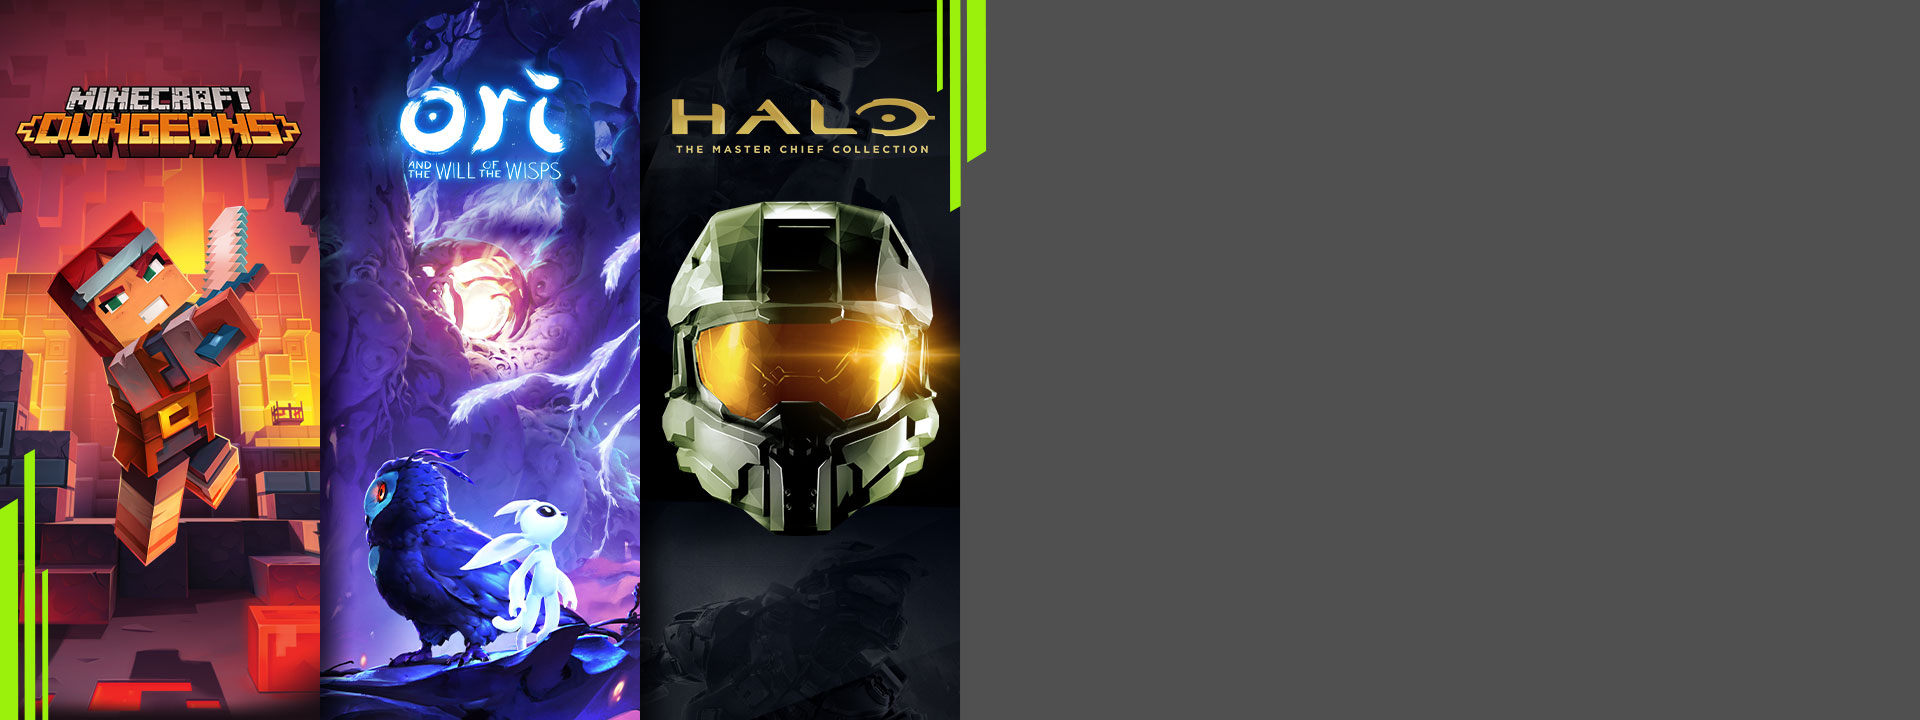 Three panels showing Minecraft Dungeons, Ori and the Will of the Wisps, and Halo: The Master Chief Collection